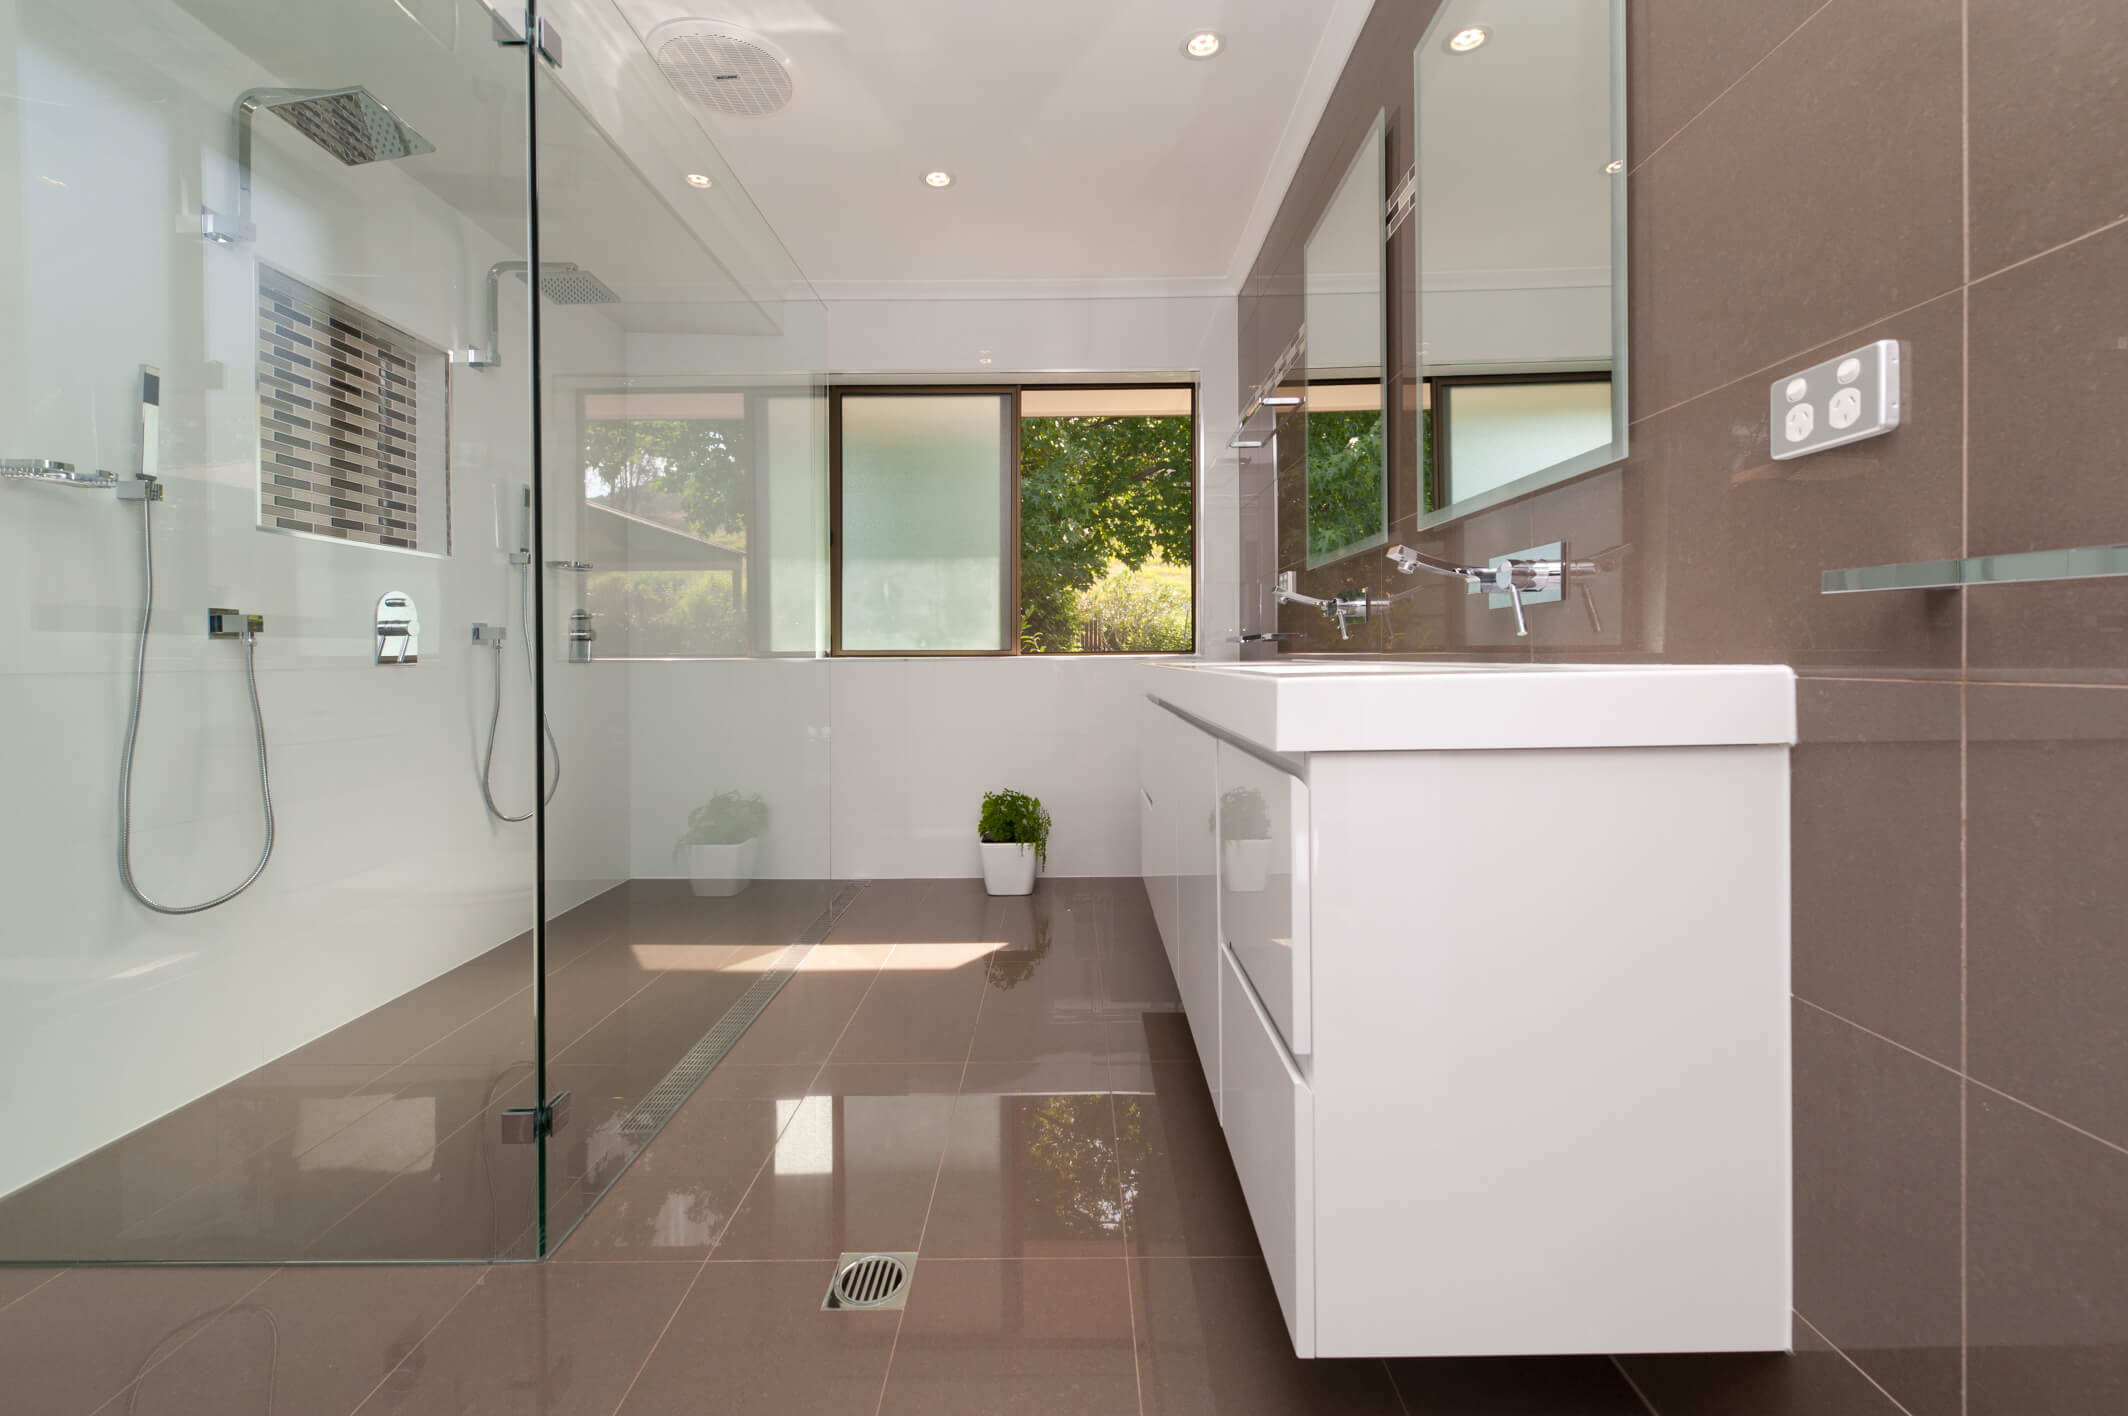 Bedroom Furniture Canberra Expert Bathroom Renovations Canberra Small To Large